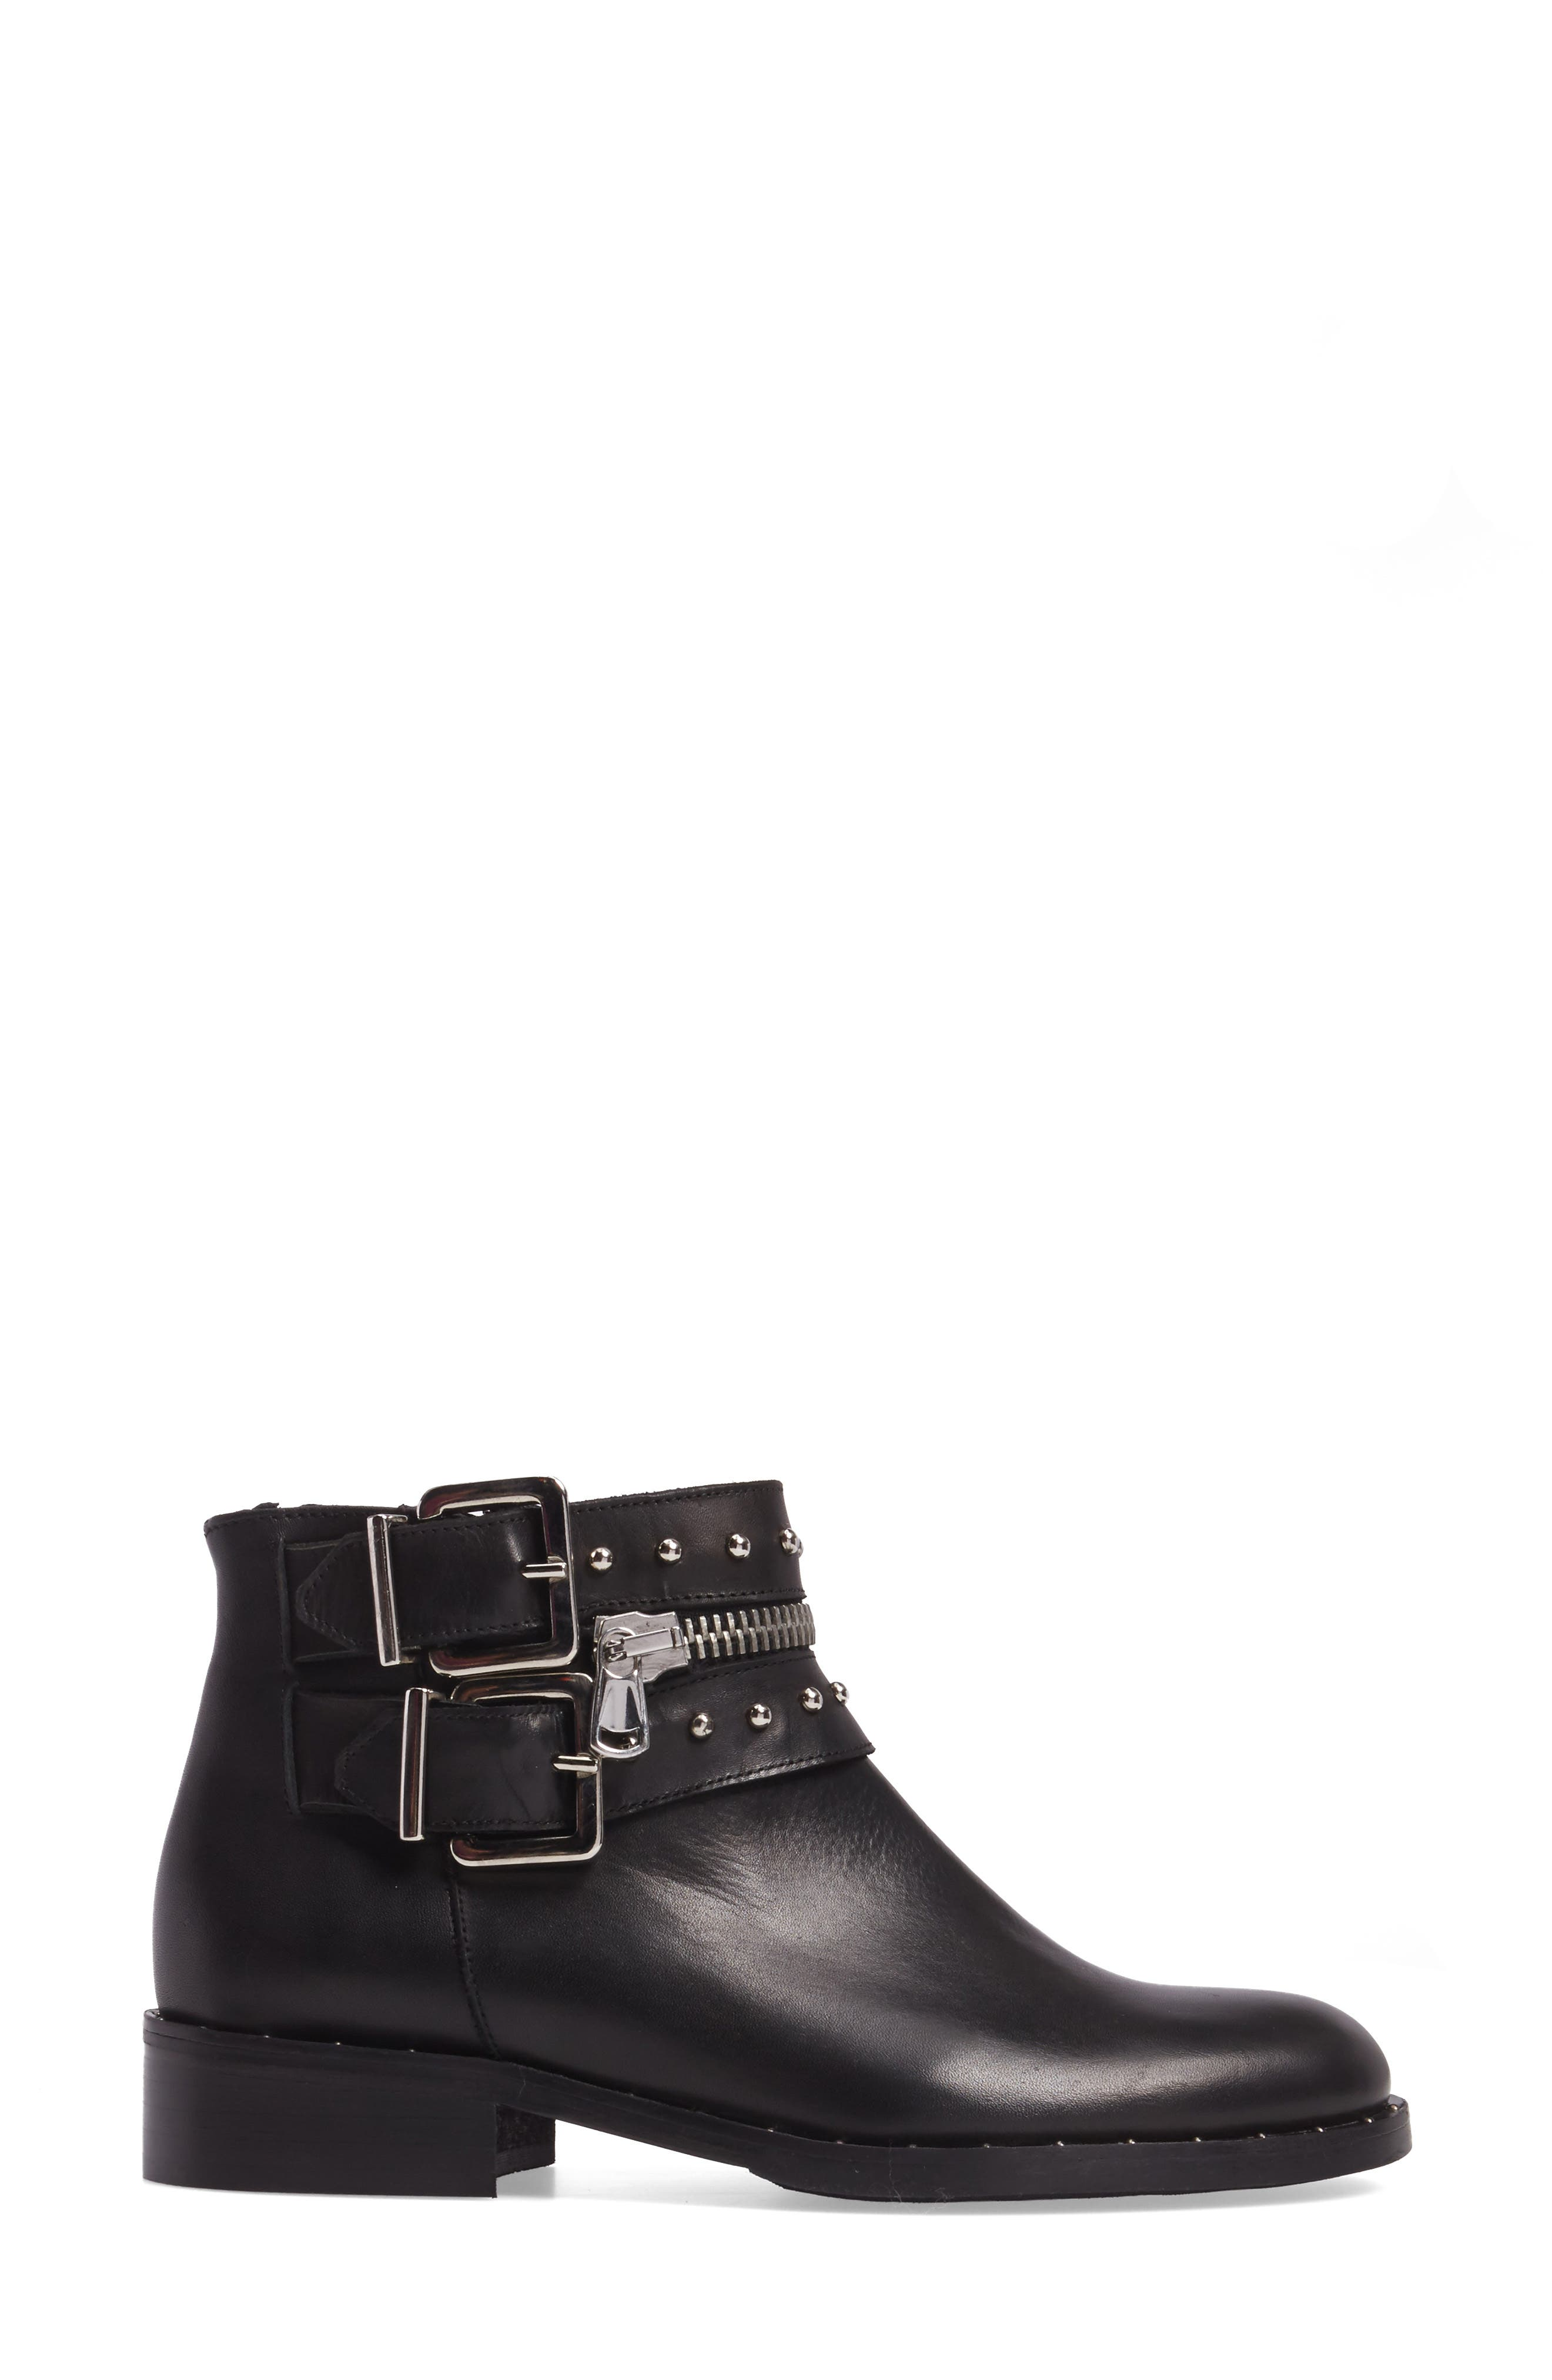 Chief Buckle Bootie,                             Alternate thumbnail 3, color,                             001